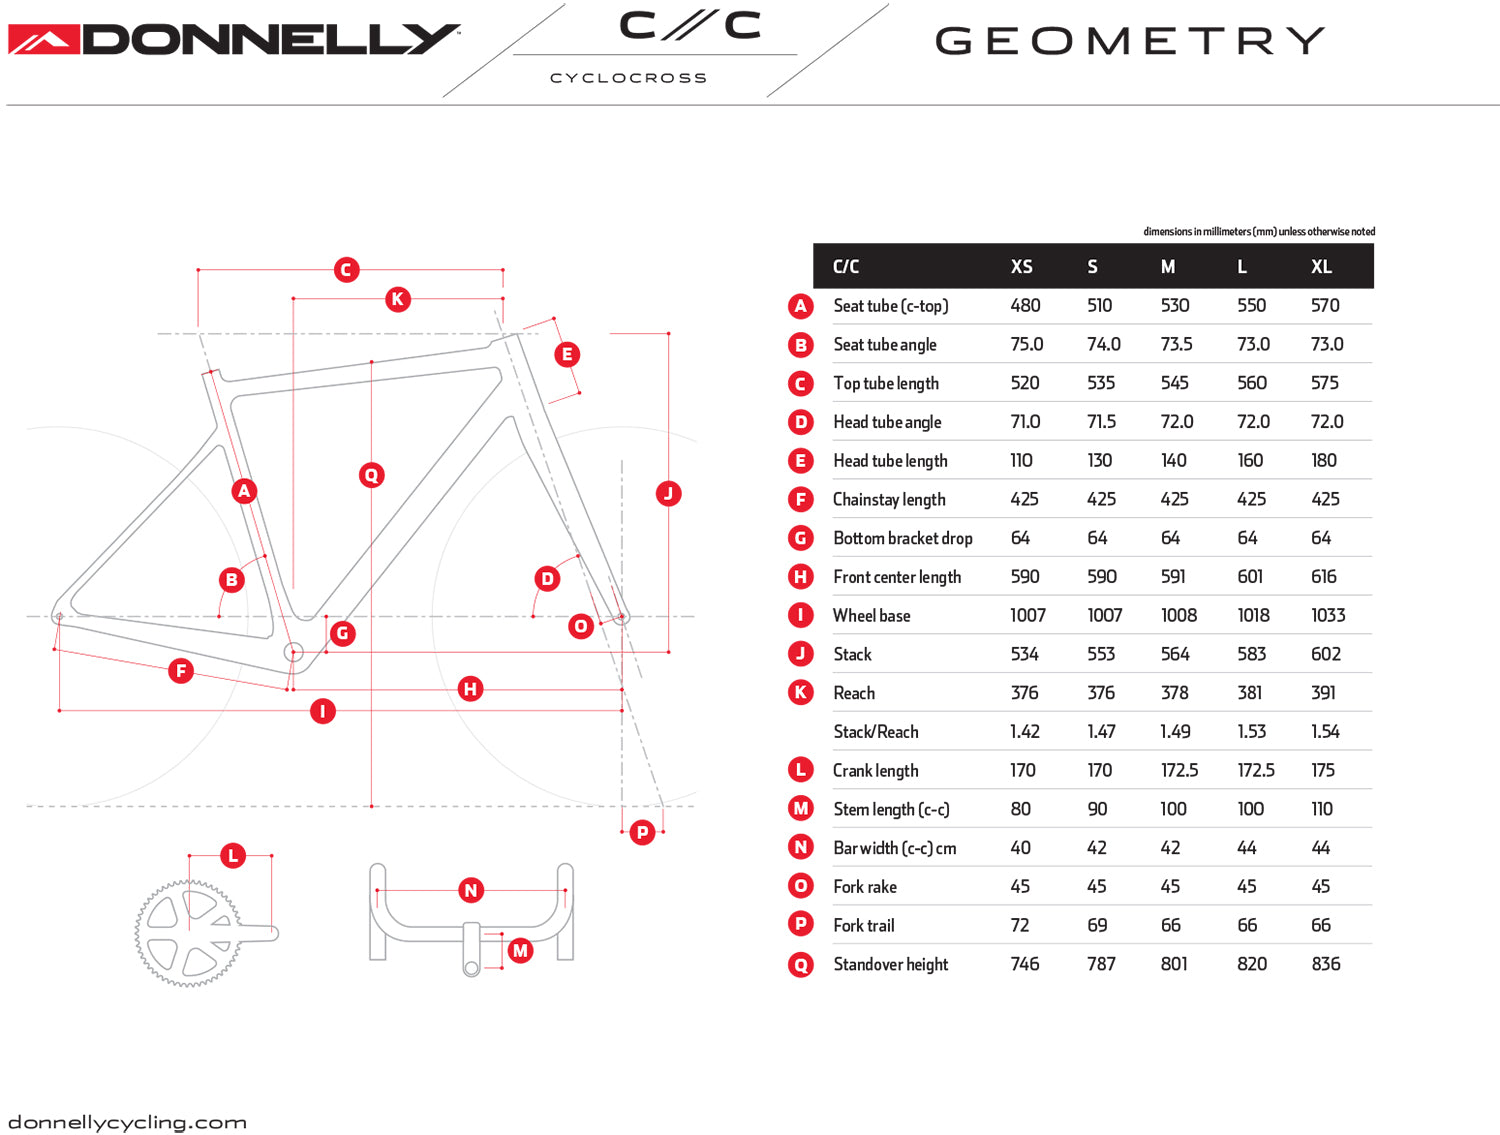 Donnelly CC Cyclocross Bike Frame Geometry Chart